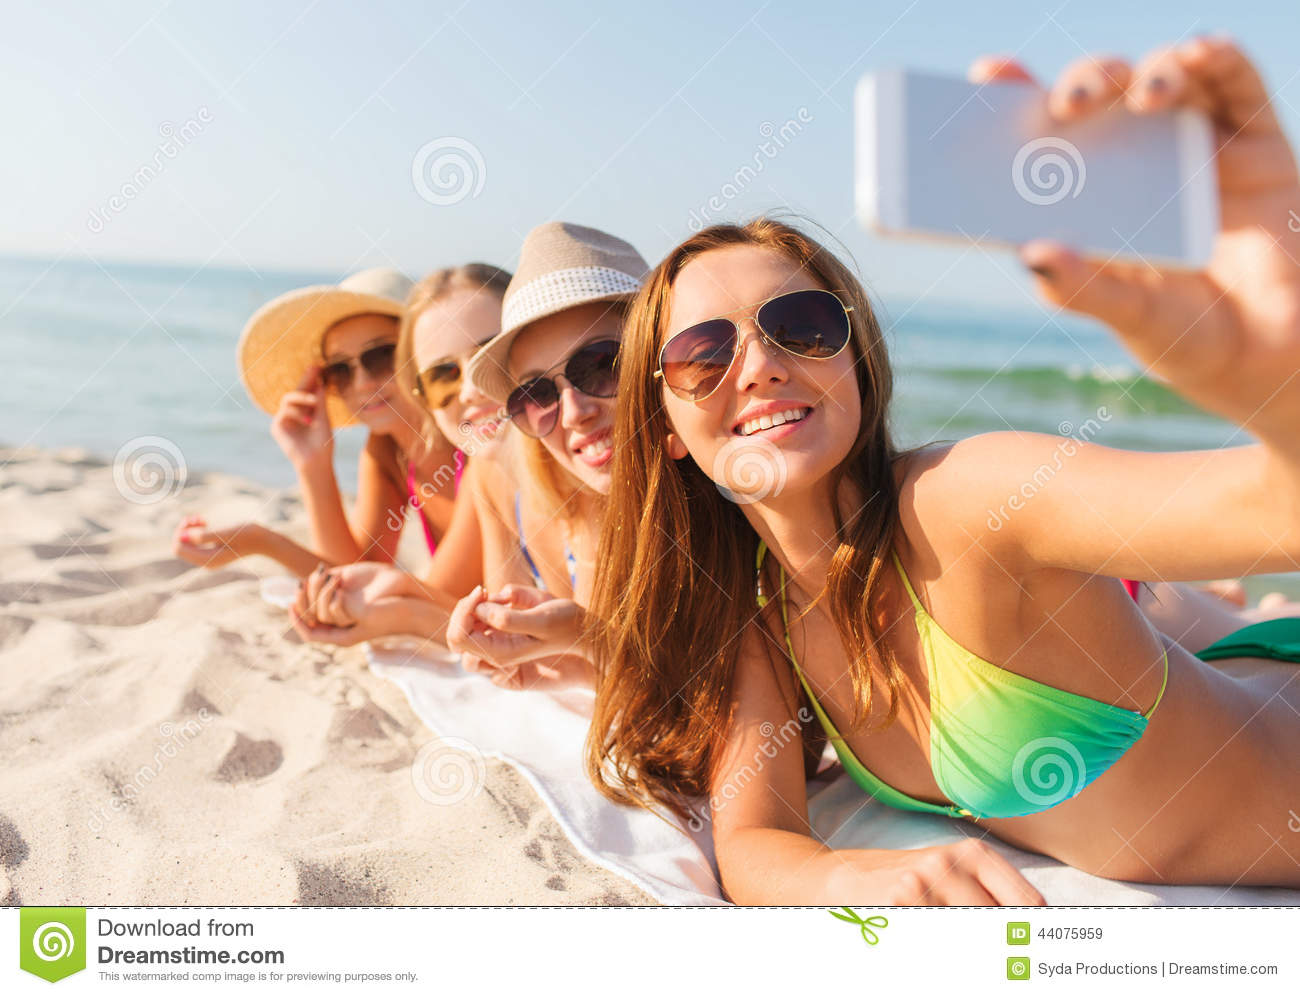 group-smiling-women-smartphone-beach-summer-vacation-travel-technology-people-concept-sunglasses-making-selfie-44075959.jpg